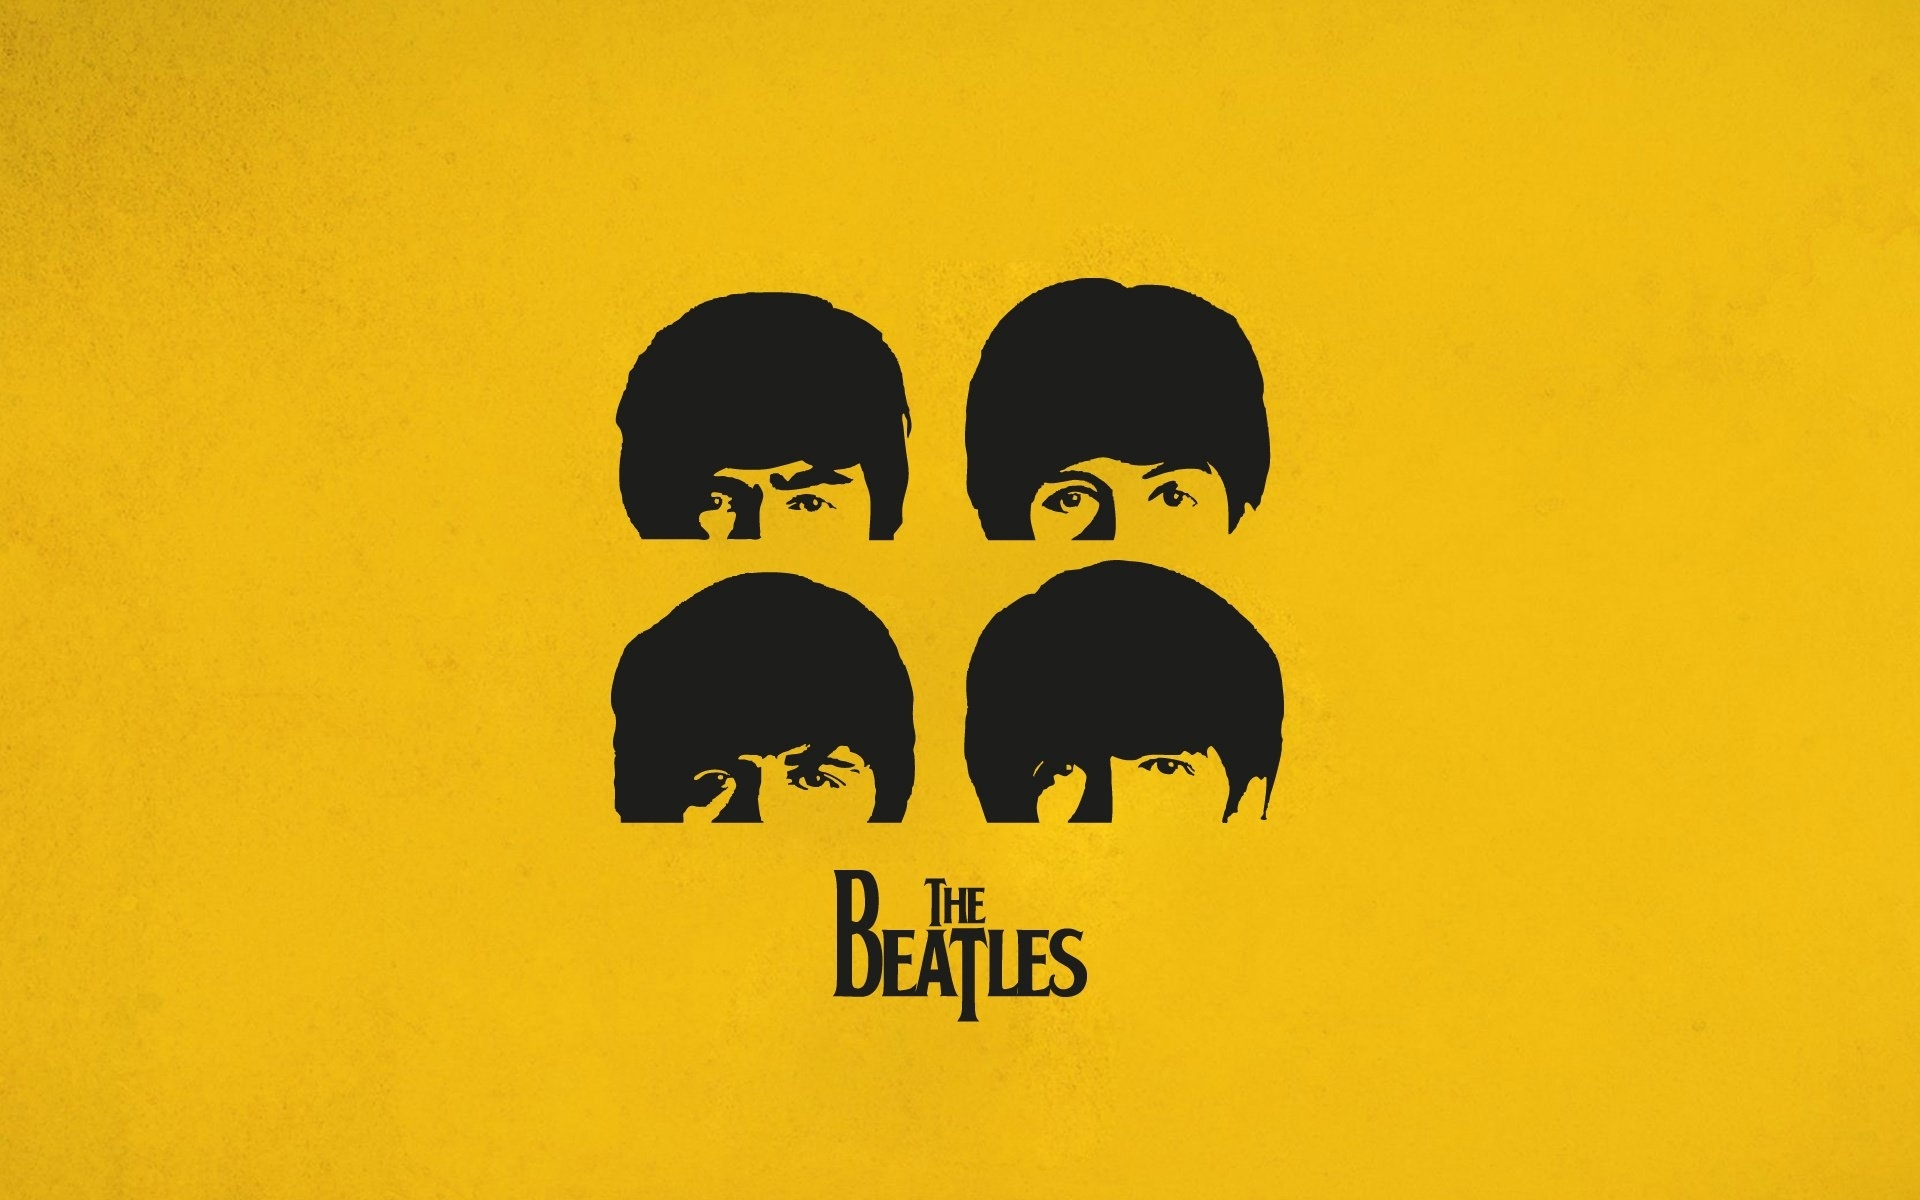 the beatles full hd fond d'écran and arrière-plan | 1920x1200 | id